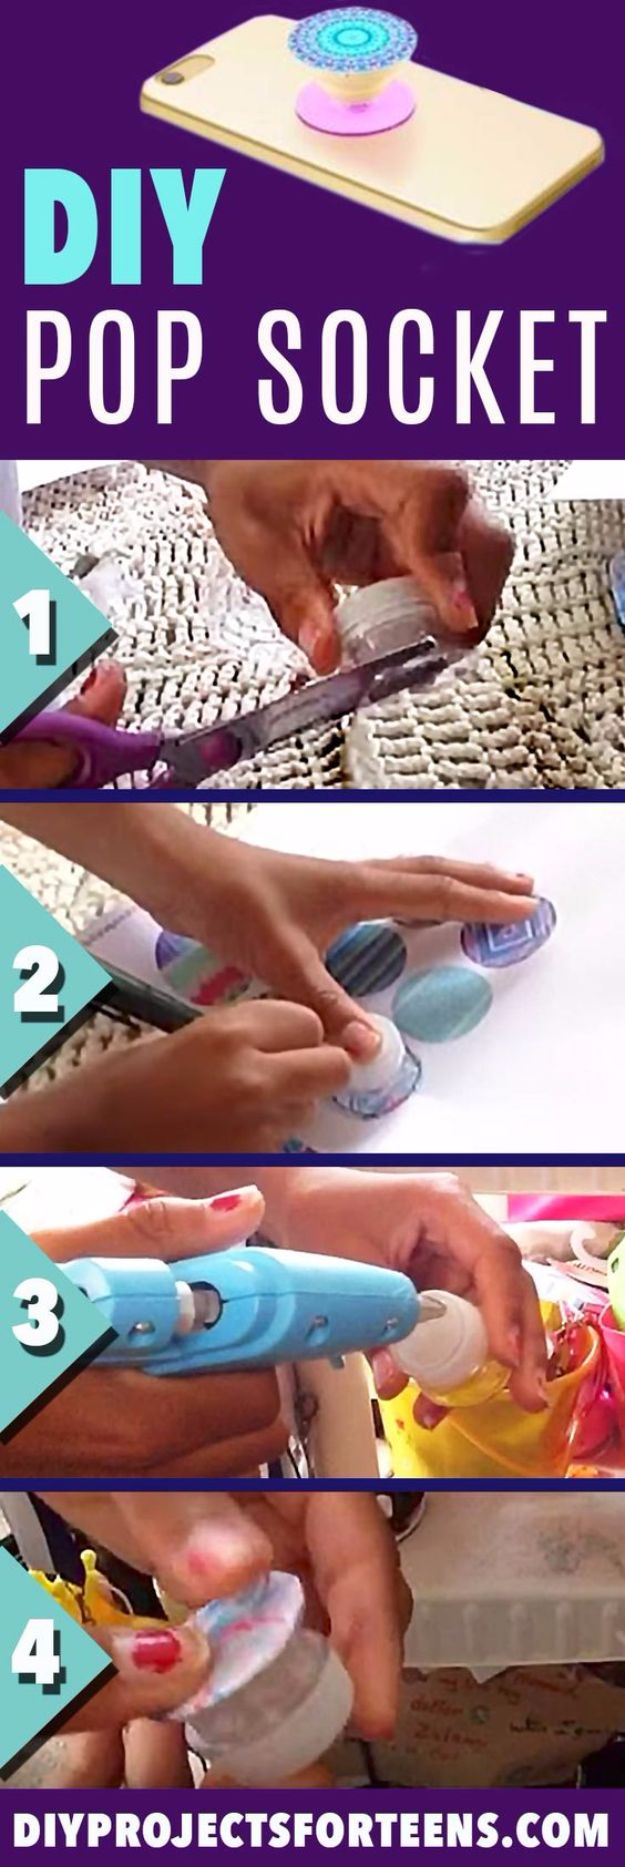 Cheap Crafts for Teens - DIY Pop Socket - Inexpensive DIY Projects for Teenagers and Tweens - Cute Room Decor, School Supplies, Accessories and Clothing You Can Make On A Budget - Fun Dollar Store Crafts - Cool DIY Gift Ideas for Christmas, Birthdays, BFF gifts and more - Step by Step Tutorials and Instructions http://diyprojectsforteens.com/cheap-craft-ideas-for-teens/